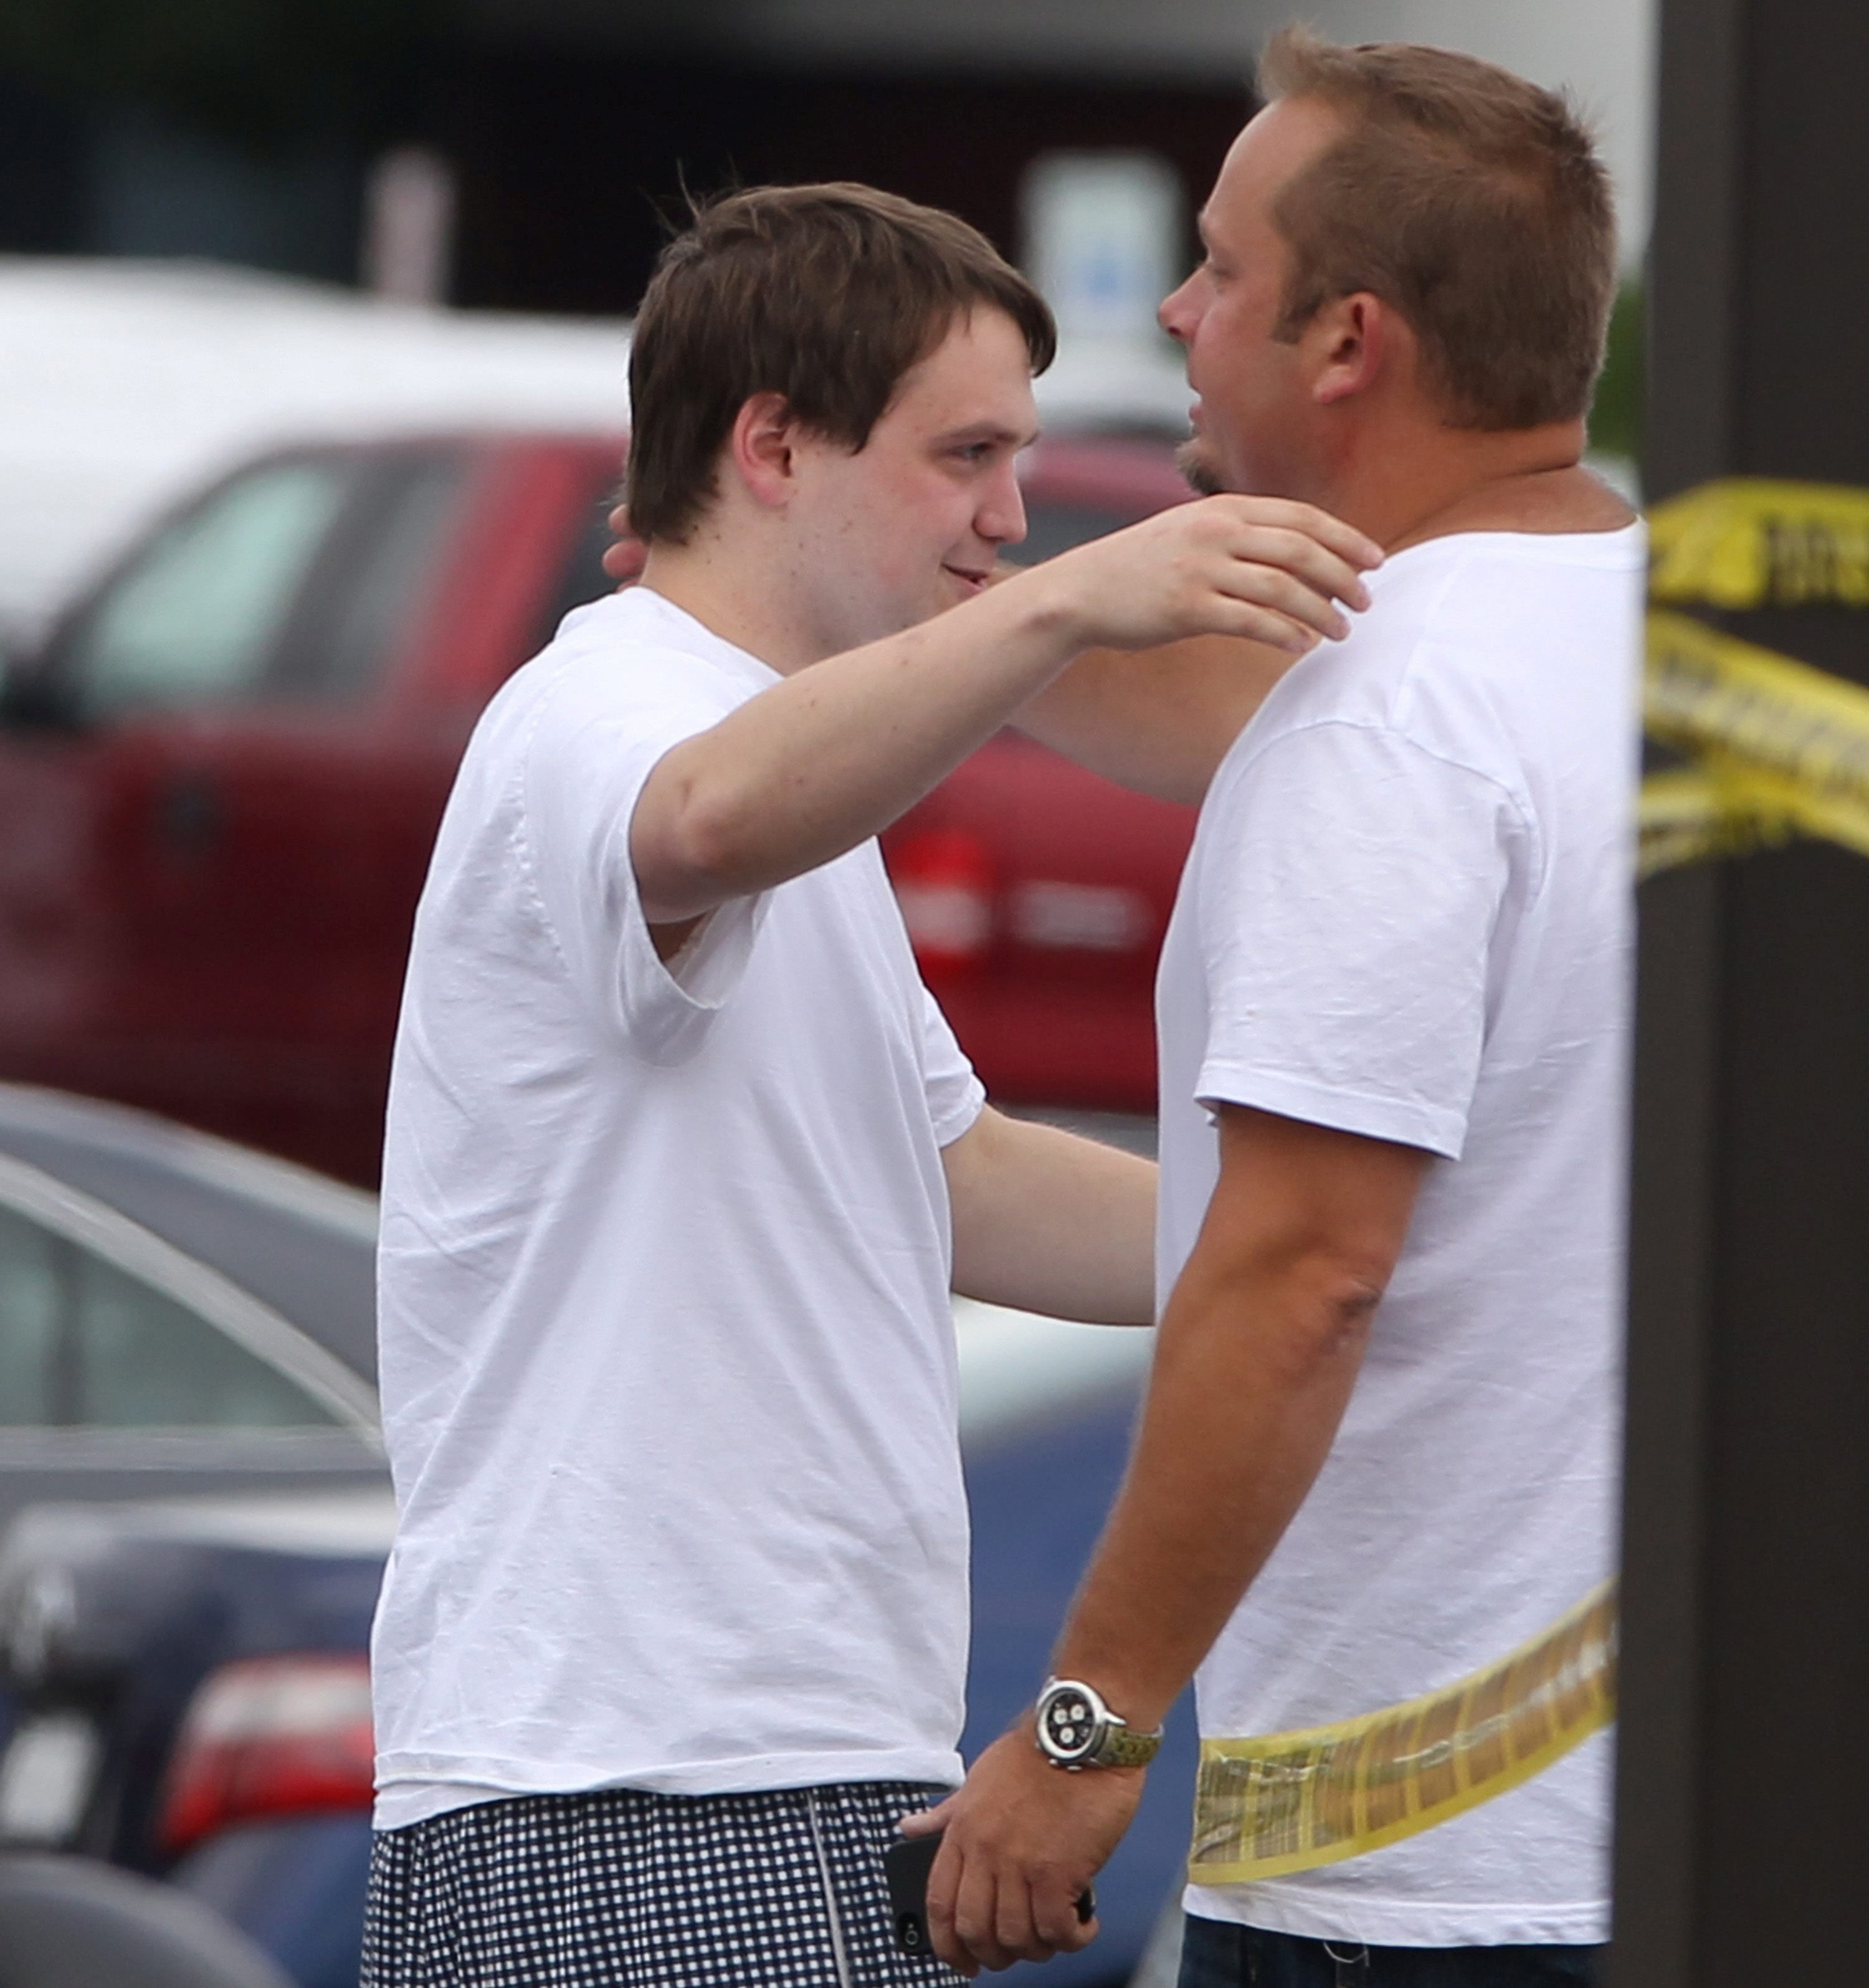 """Bernard """"Bernie"""" Grucza, right, was seen in this file photo about to comfort another man in the death of Laurence C. Wells on June 29 while police gathered information at the crime scene at the Toys 'R' Us in Hamburg."""